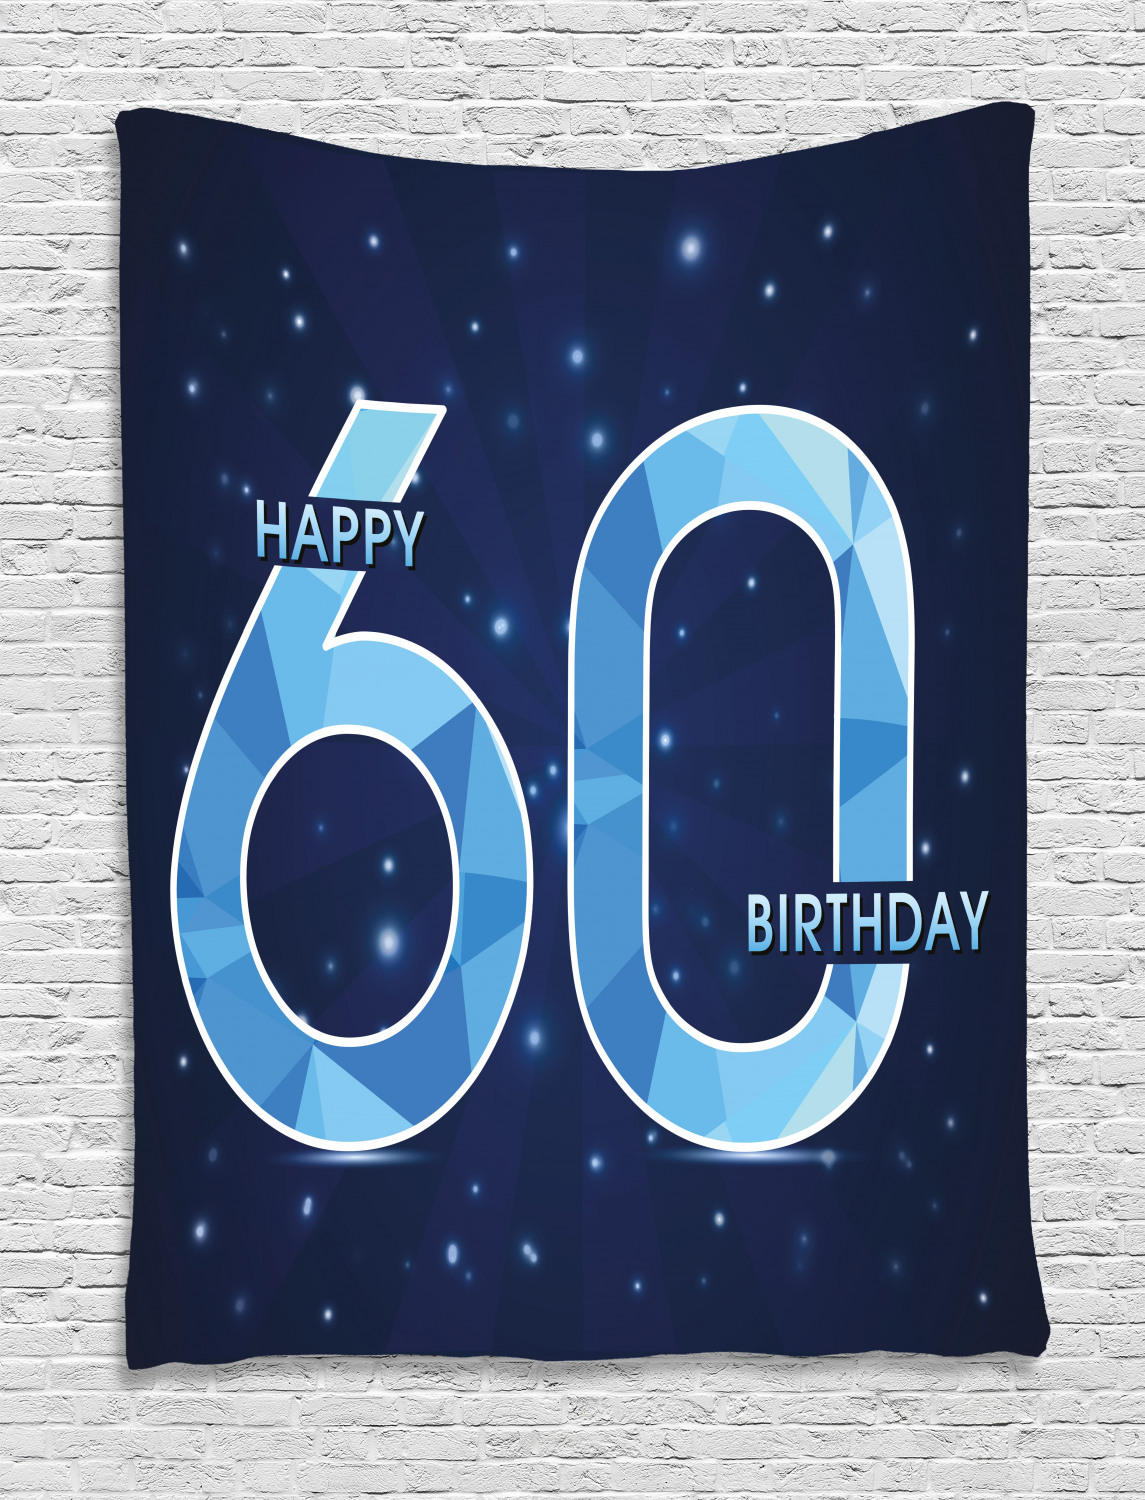 60th Birthday Tapestry Wall Hanging Decoration for Room 2 ...